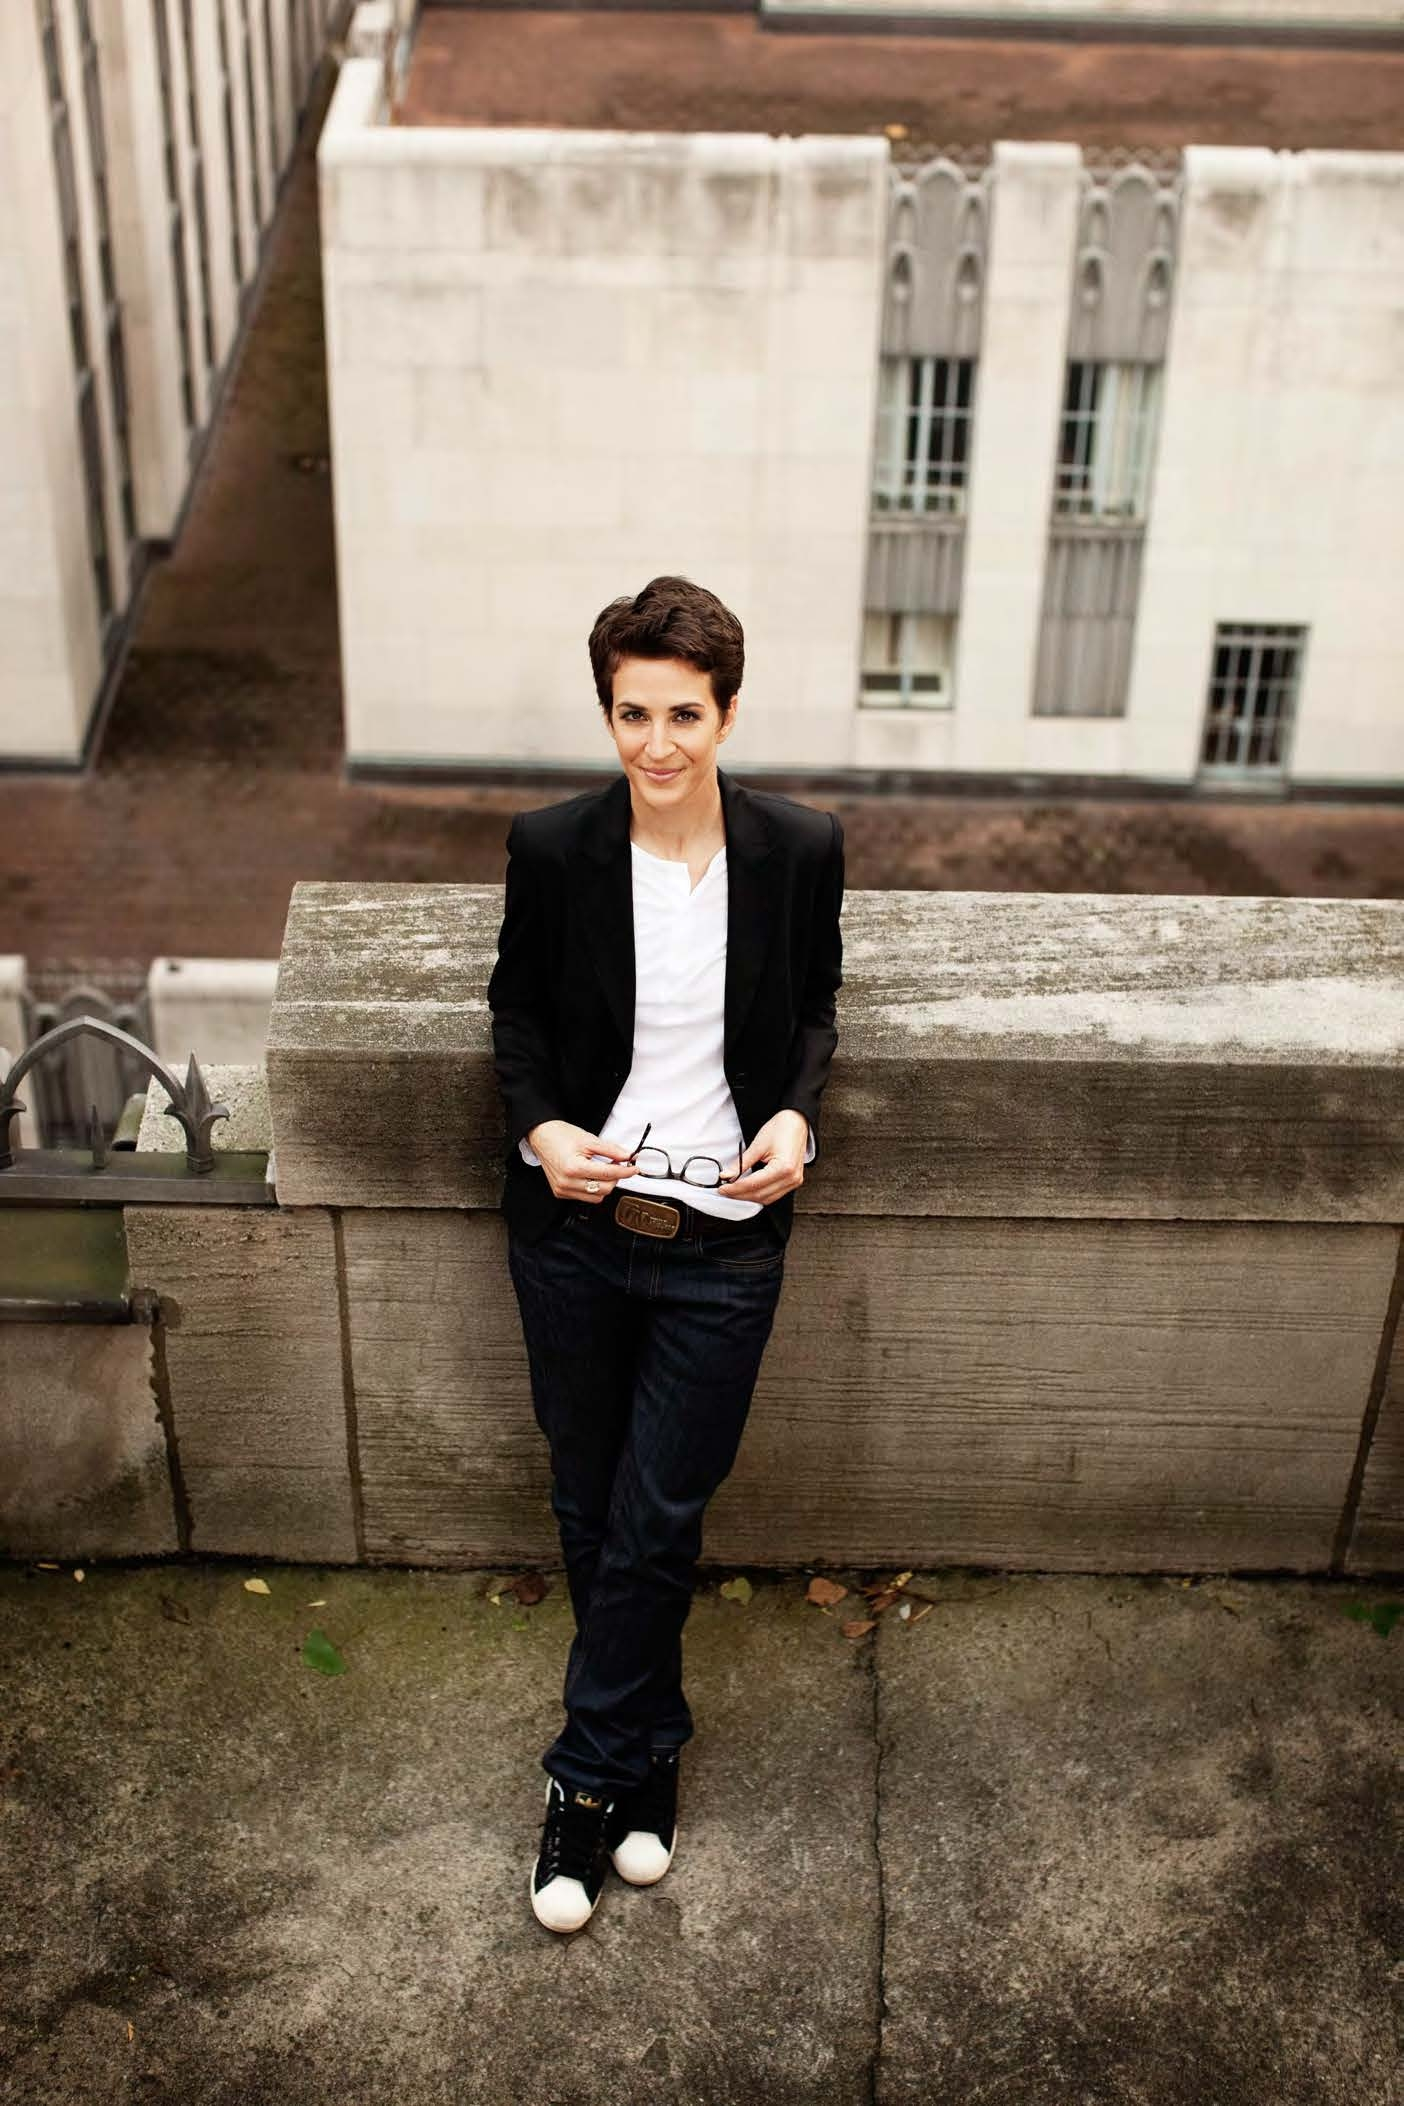 Rachel Maddow author photo - photo credit Bill Phelps